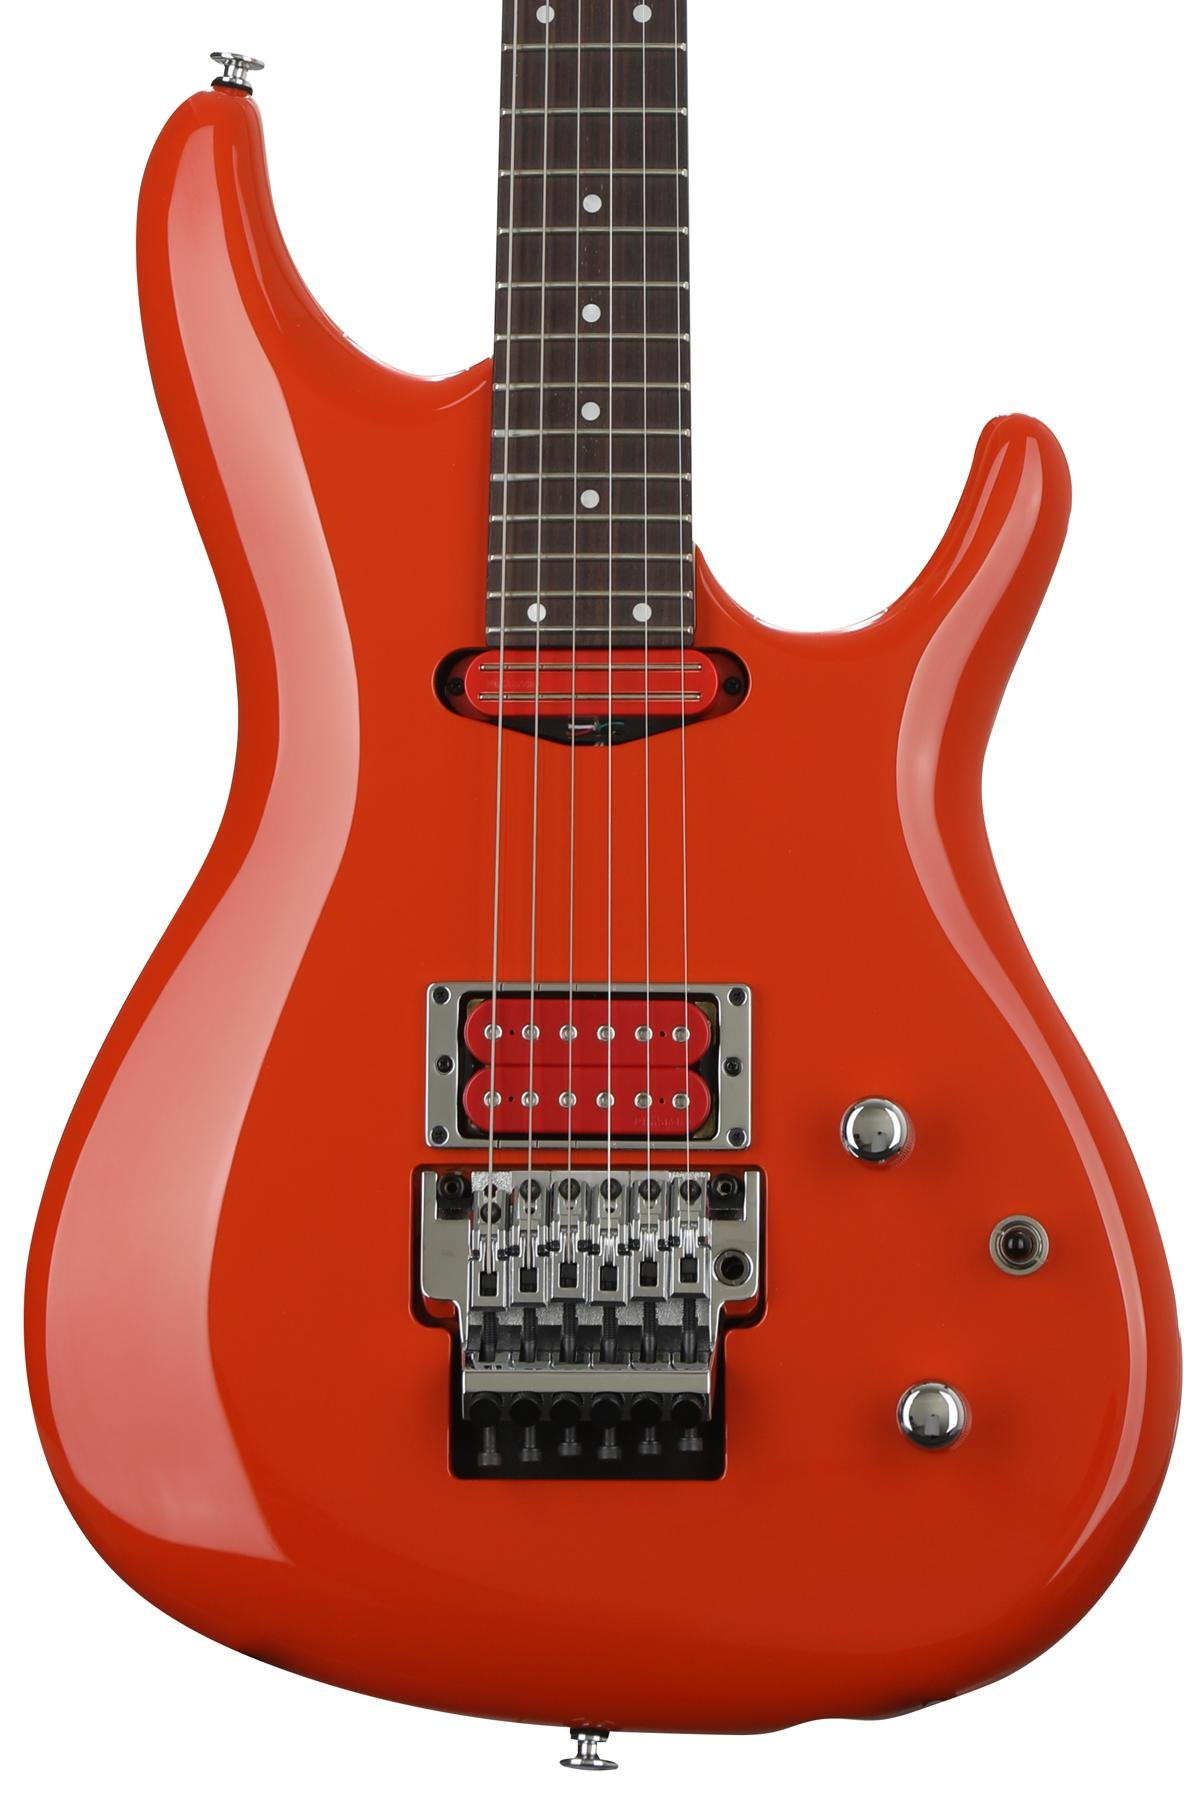 Wonderful Wiring Wizard Big How To Rewire An Electric Guitar Square Bulldog Alarm Wiring How To Install A Remote Start Alarm Young Rev Search BrownSolar Panel Diagram Ibanez Electric Guitars | Sweetwater